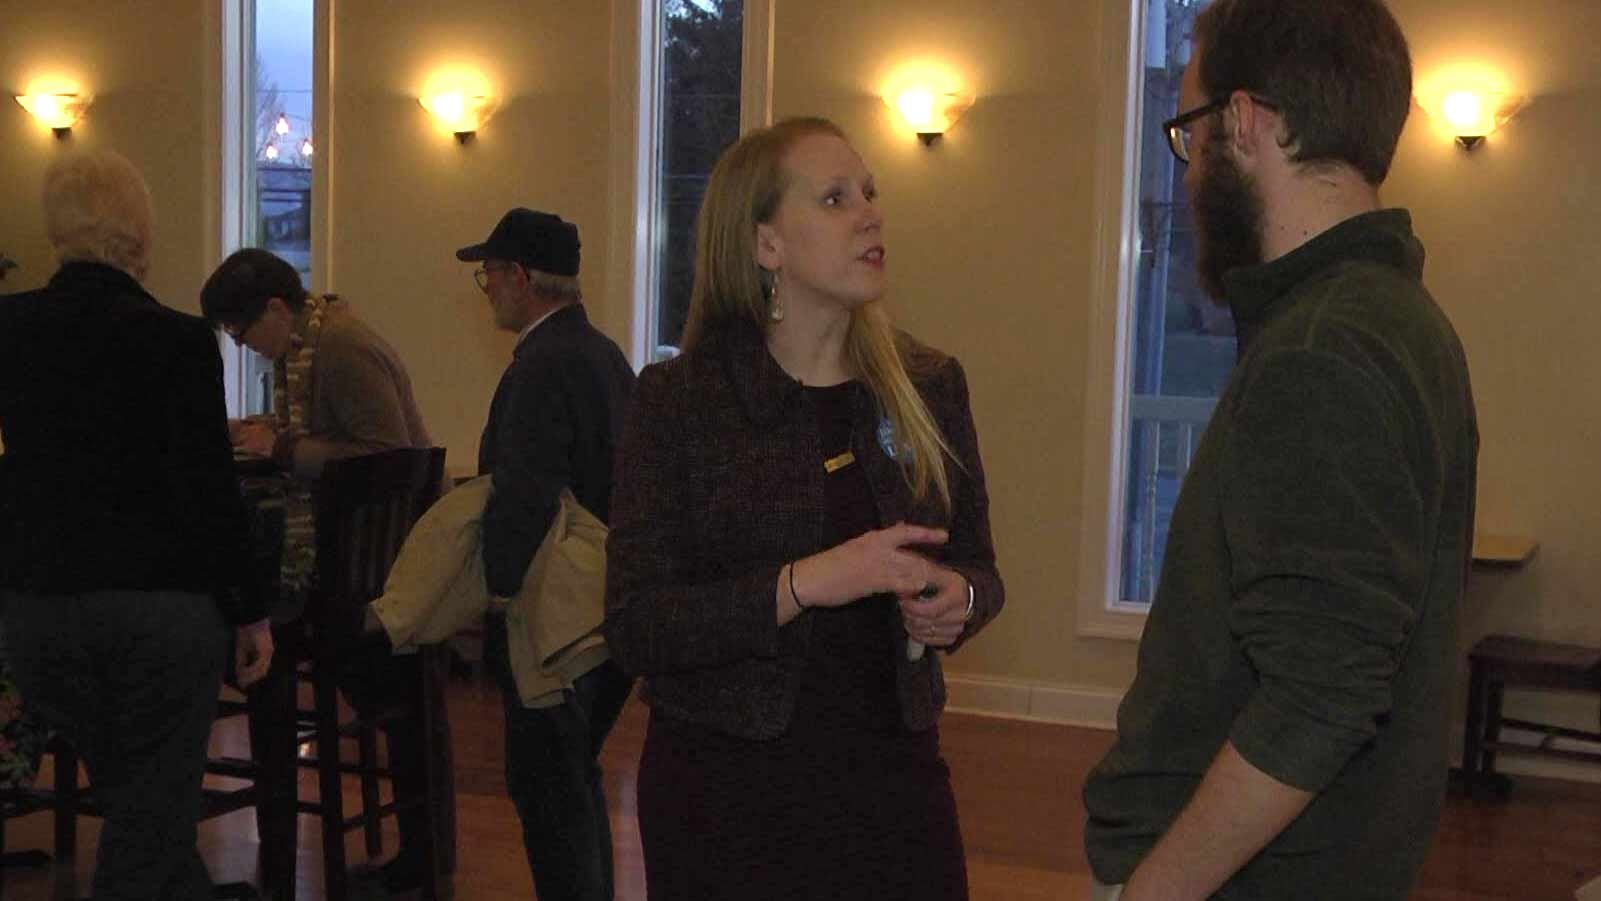 Jennifer Lewis talking with one of the people in attendance at her campaign kick-off.